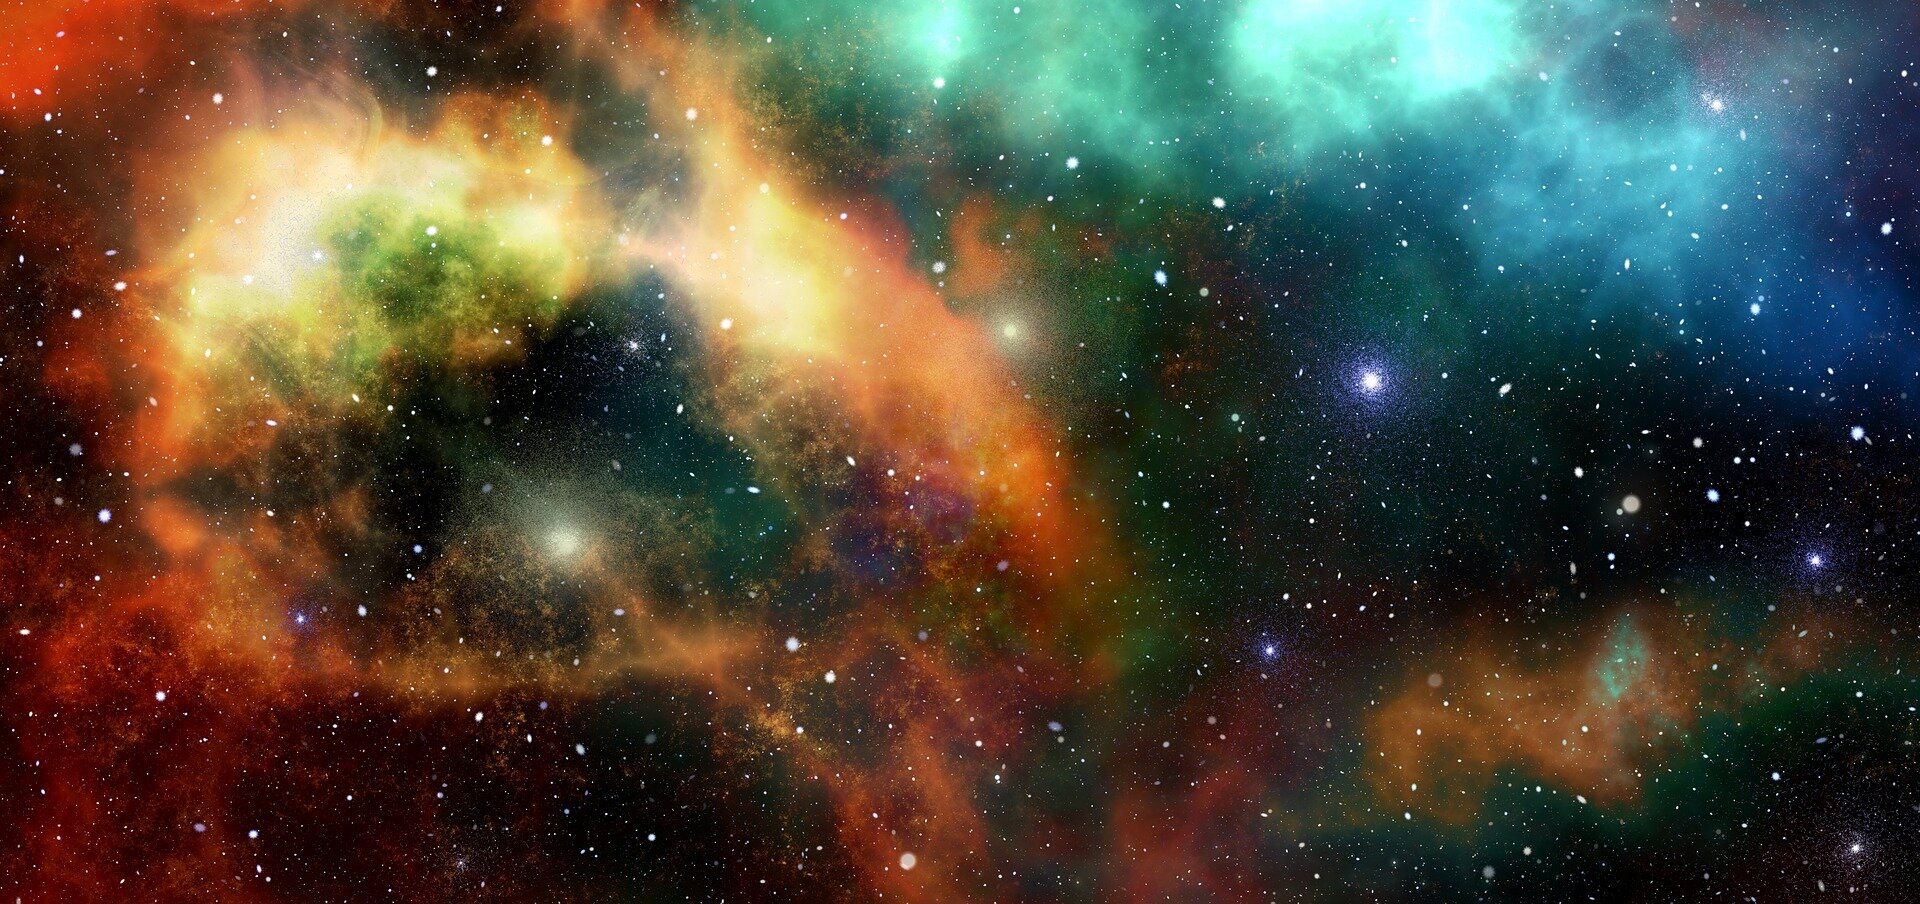 The universe is about 14 billion years old